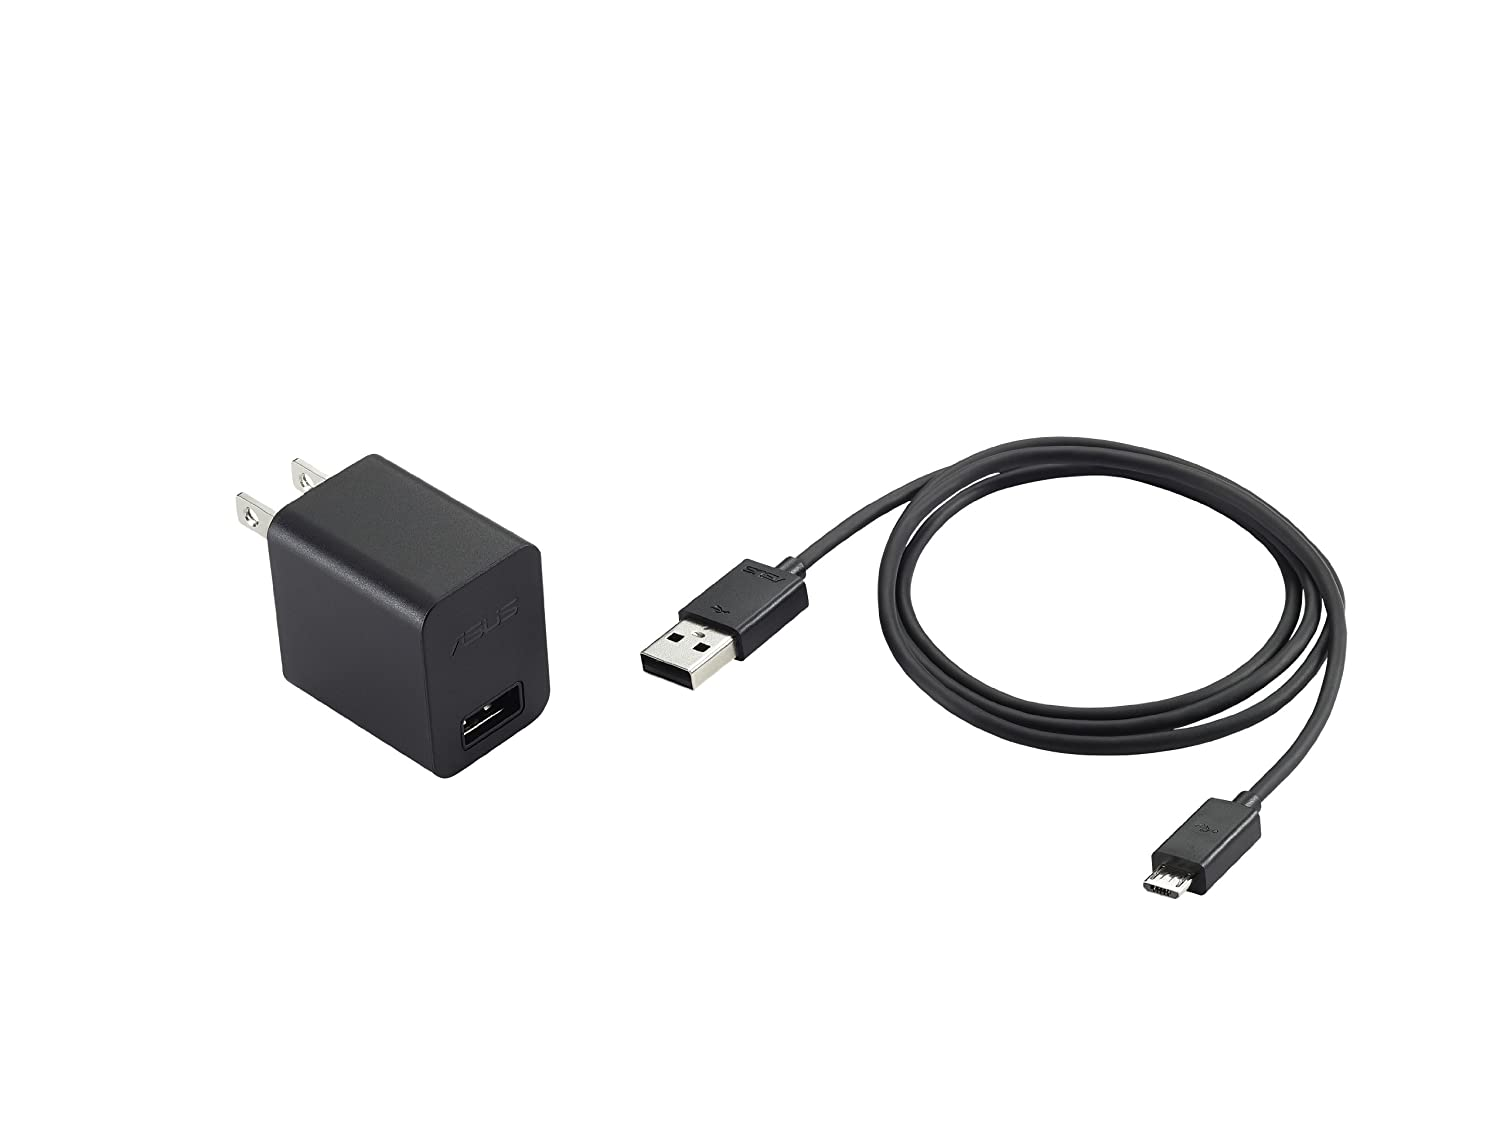 Amazon.com: ASUS Official Nexus 7 FHD Power Adapter (2013): Computers & Accessories